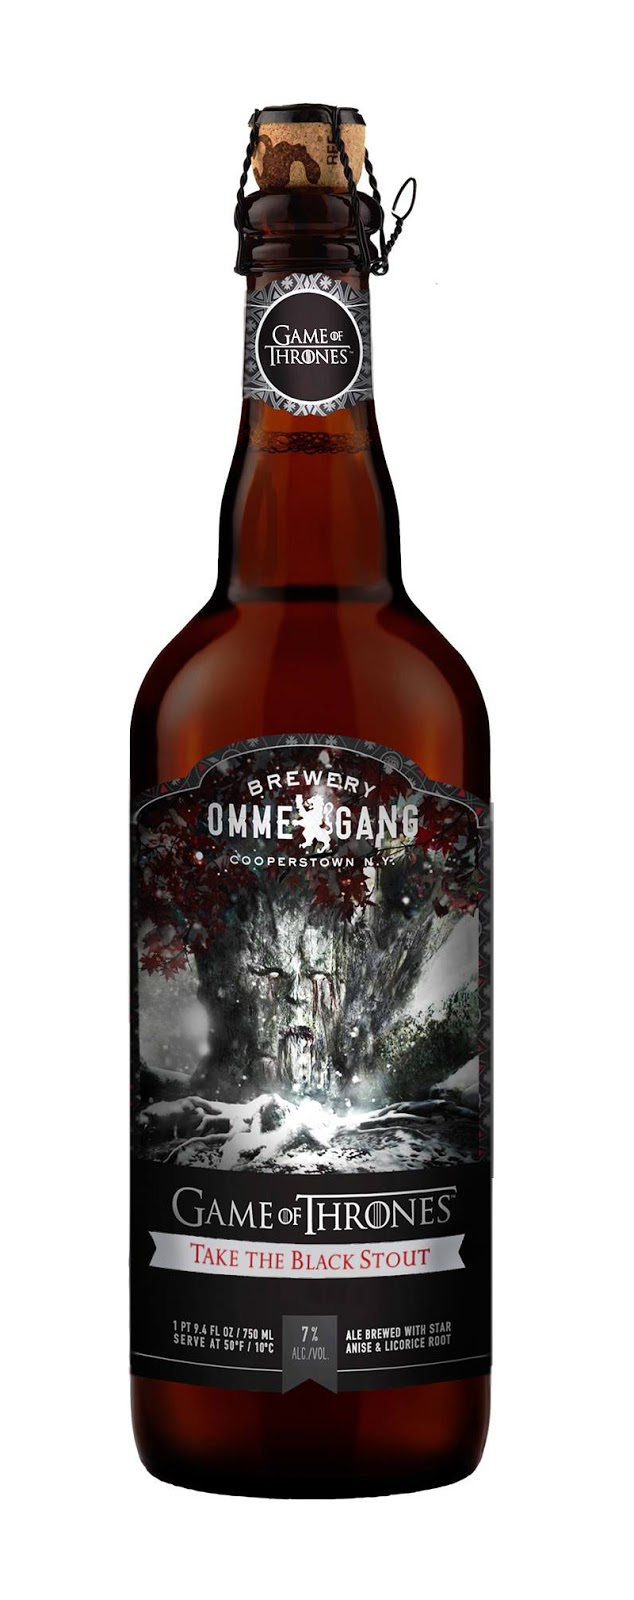 Game of Thrones Take The Black Stout Beer from Brewery Ommegang